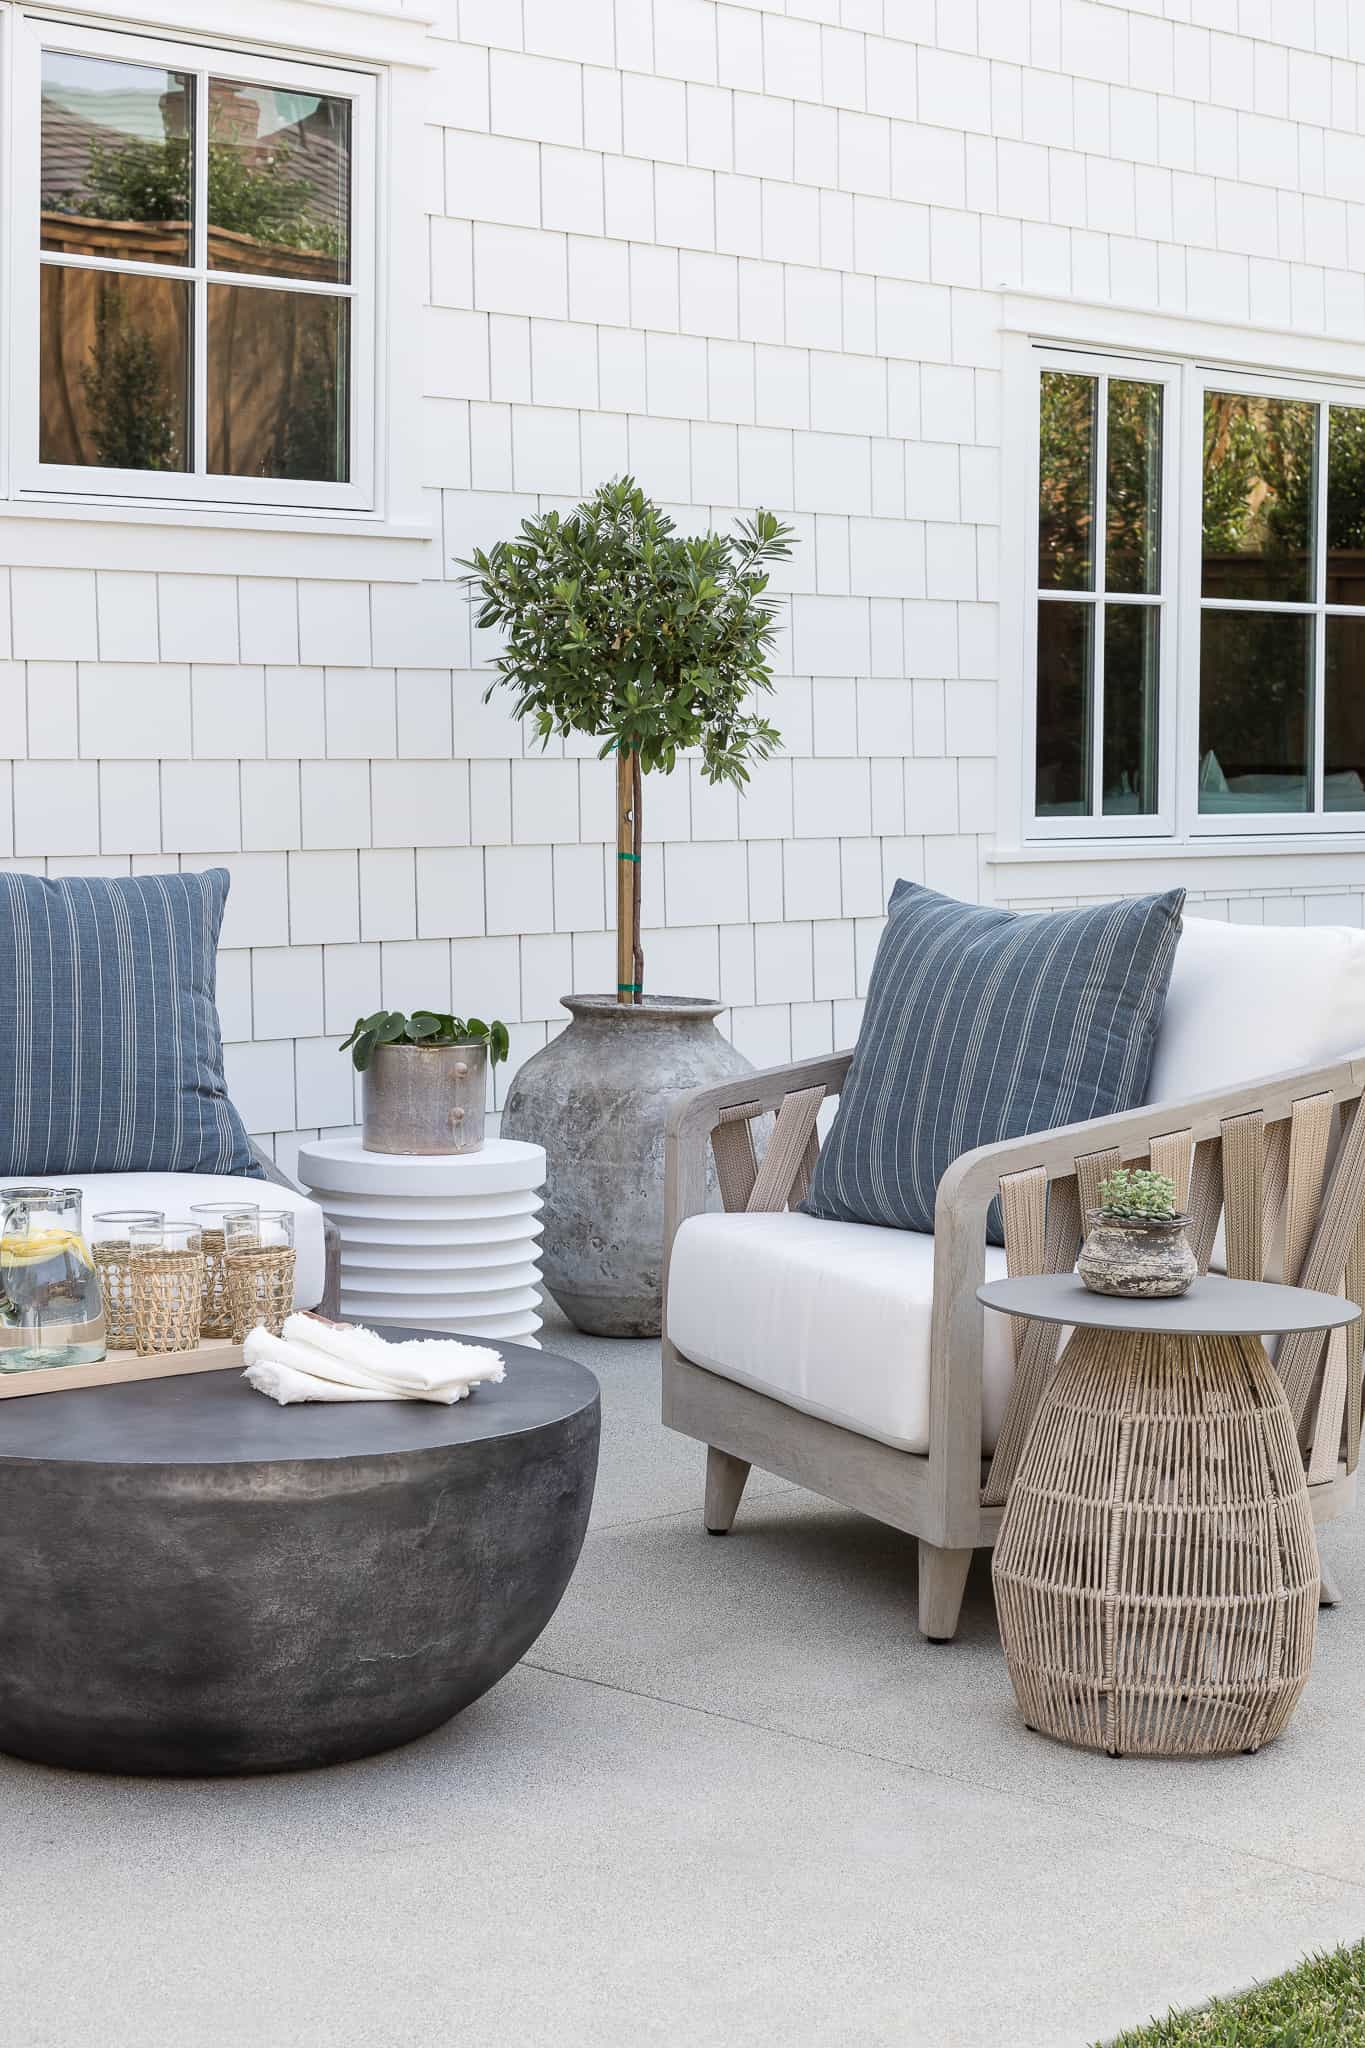 Outdoor Lounge Area - Port Newport Project - Mindy Gayer Design Co.